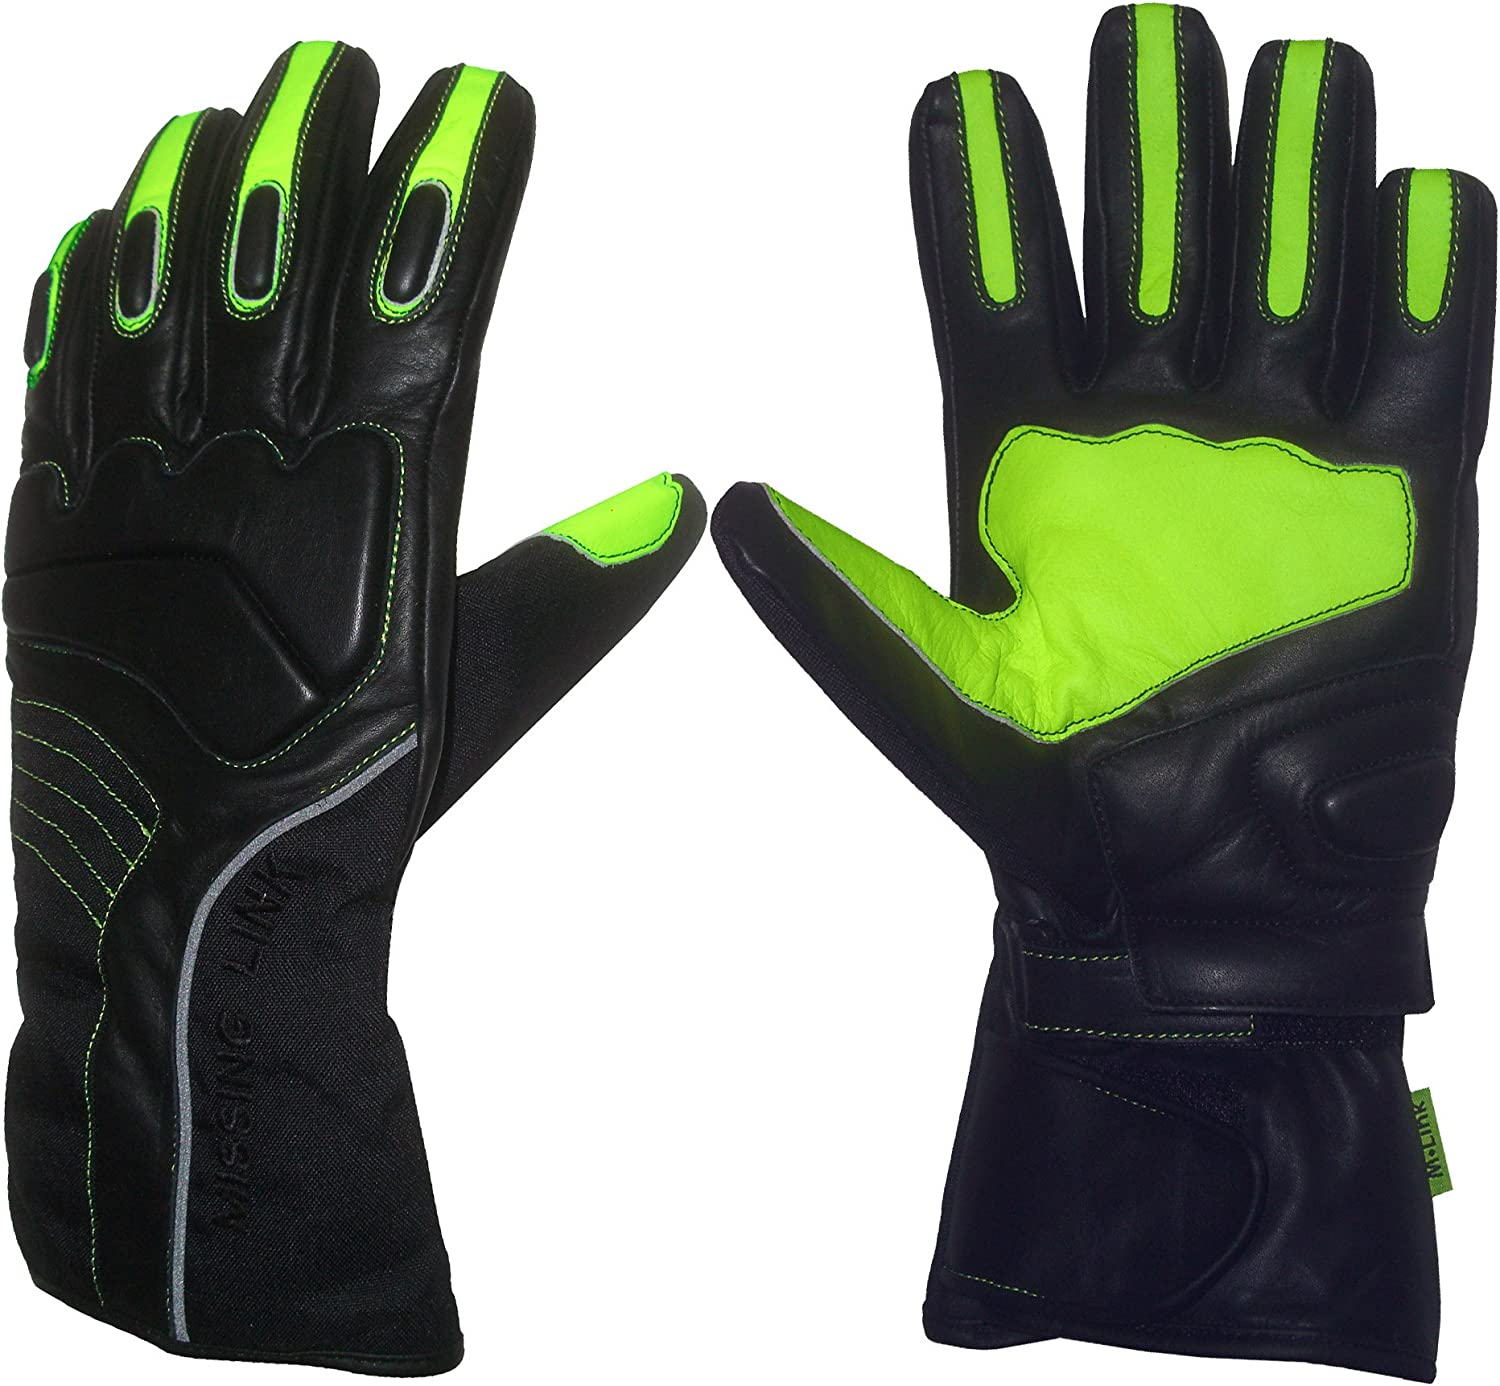 New Shipping Free Shipping Missing Link Cold Great interest Duty Gloves